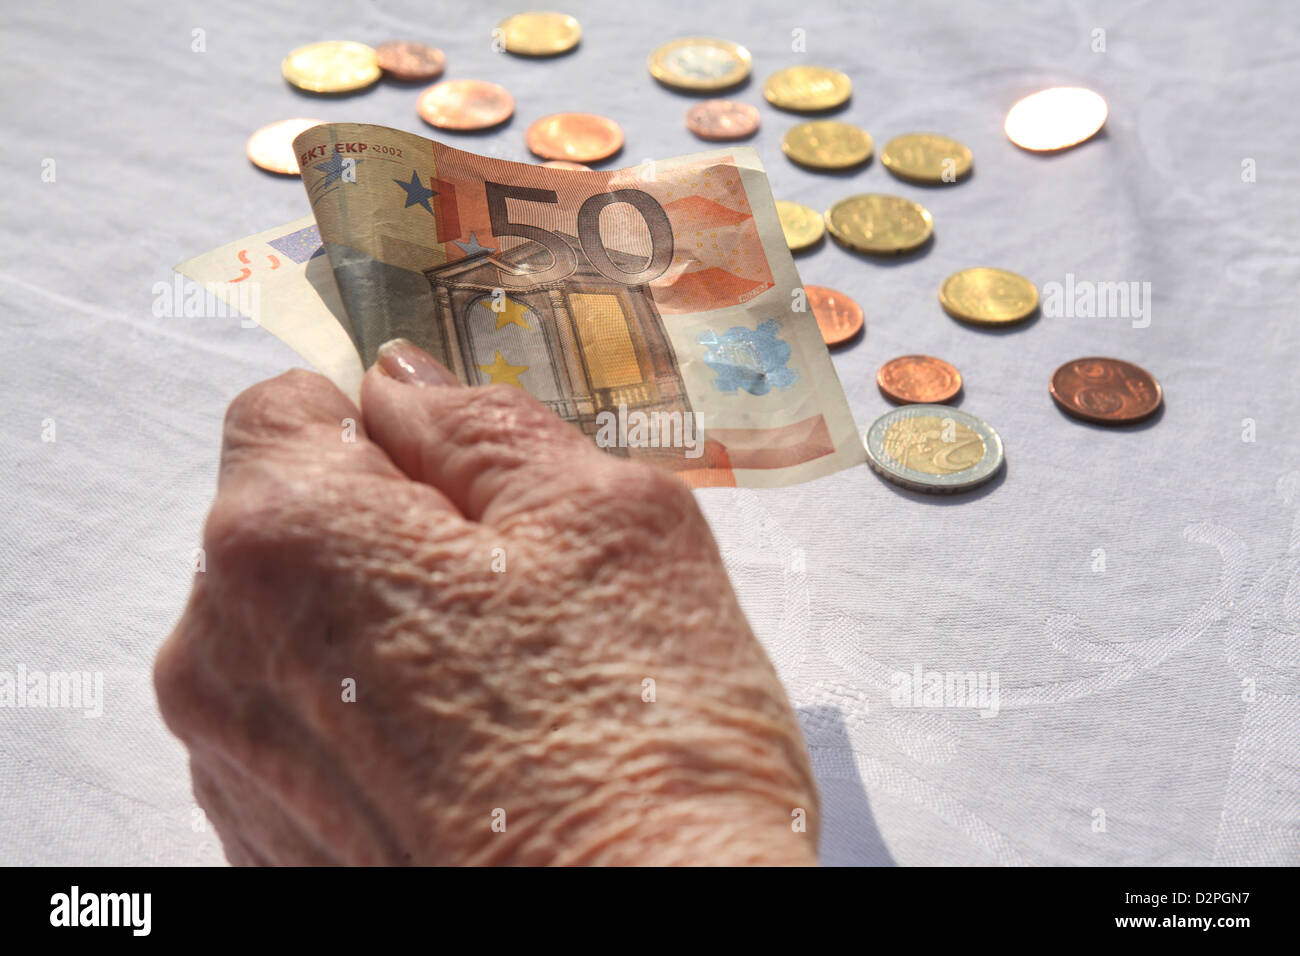 Berlin, Germany, the hand of a pensioner with a Euro note and coins - Stock Image